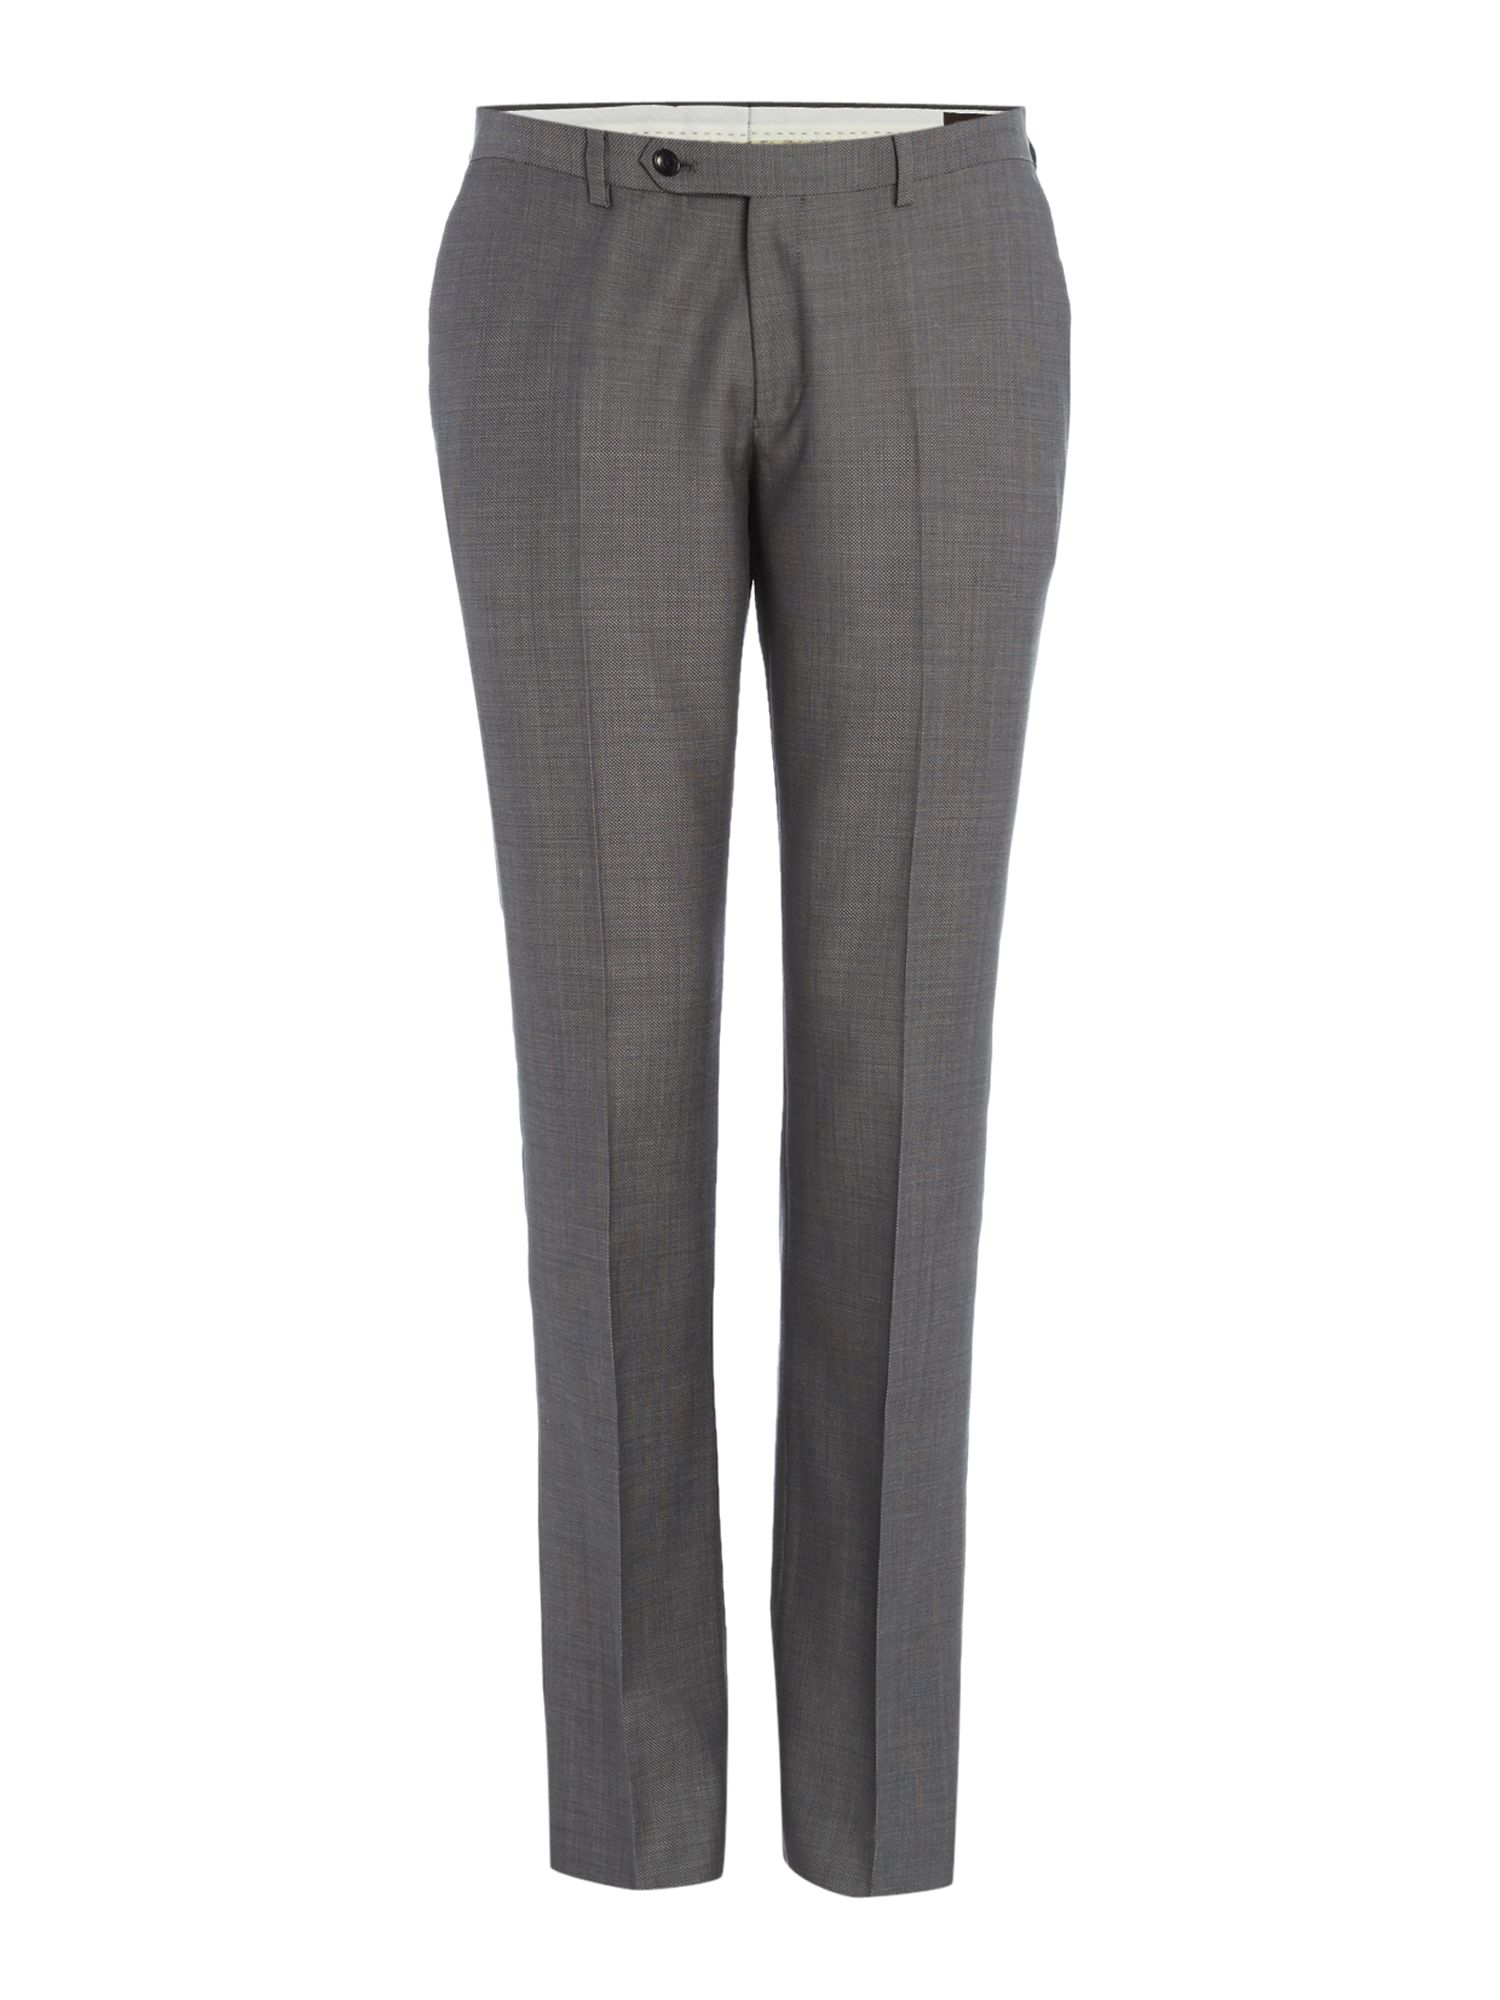 Men's Corsivo Vivaldo Birdseye Suit Trouser, Grey